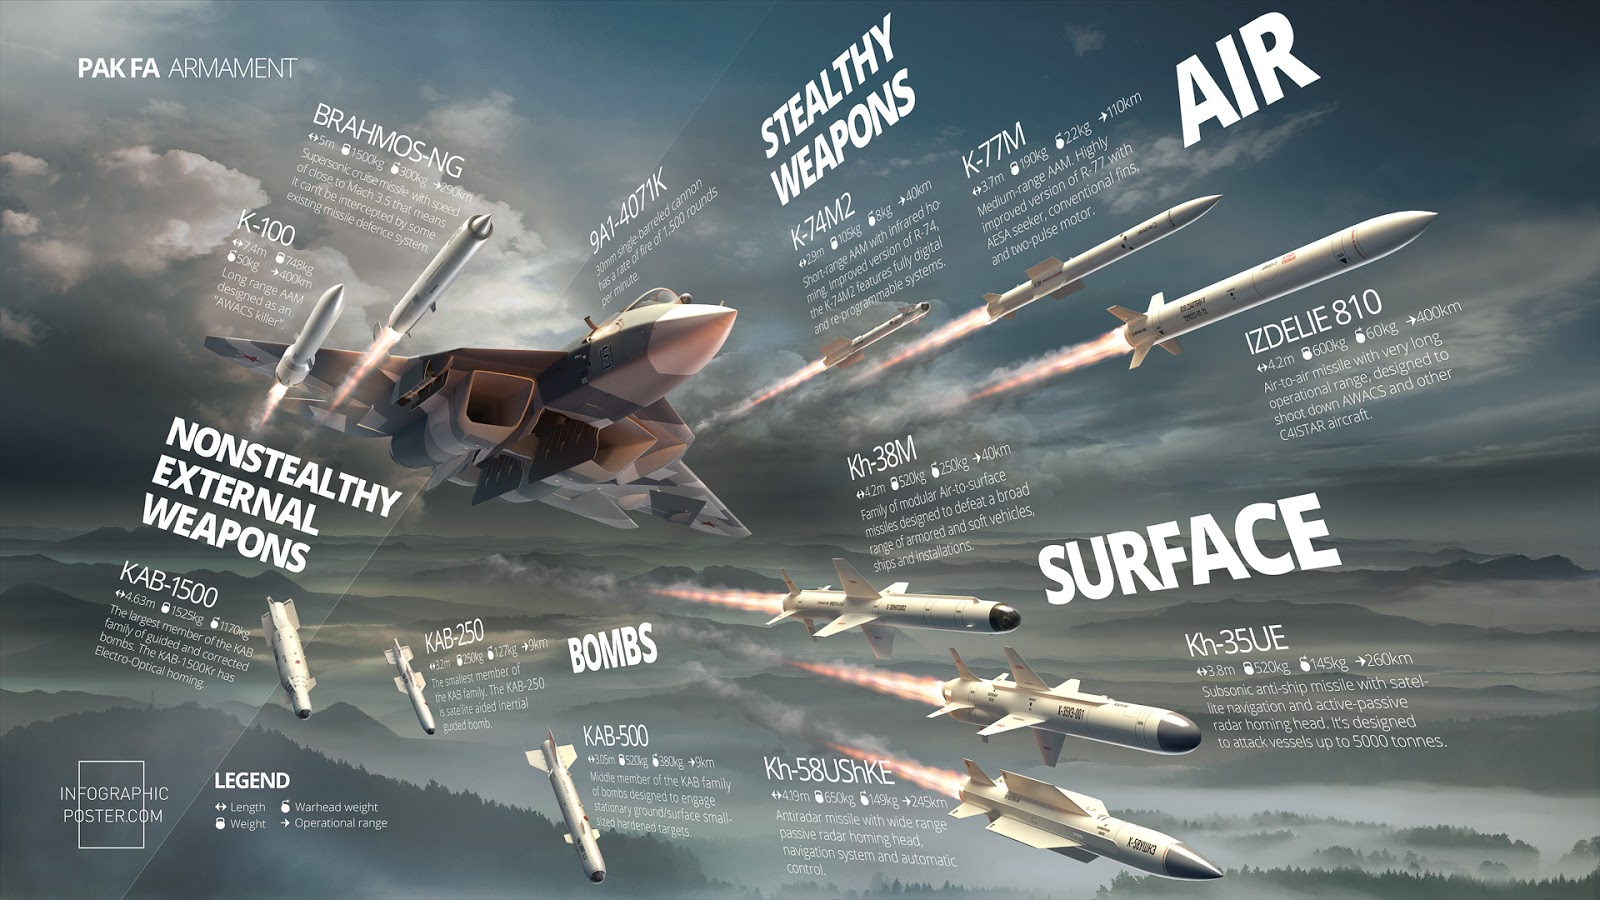 PAK-FA - Page 15 All%2Bweapons%2Bcarried%2Bby%2BRussia%2527s%2Bnext%2Bgeneration%2Bfighter